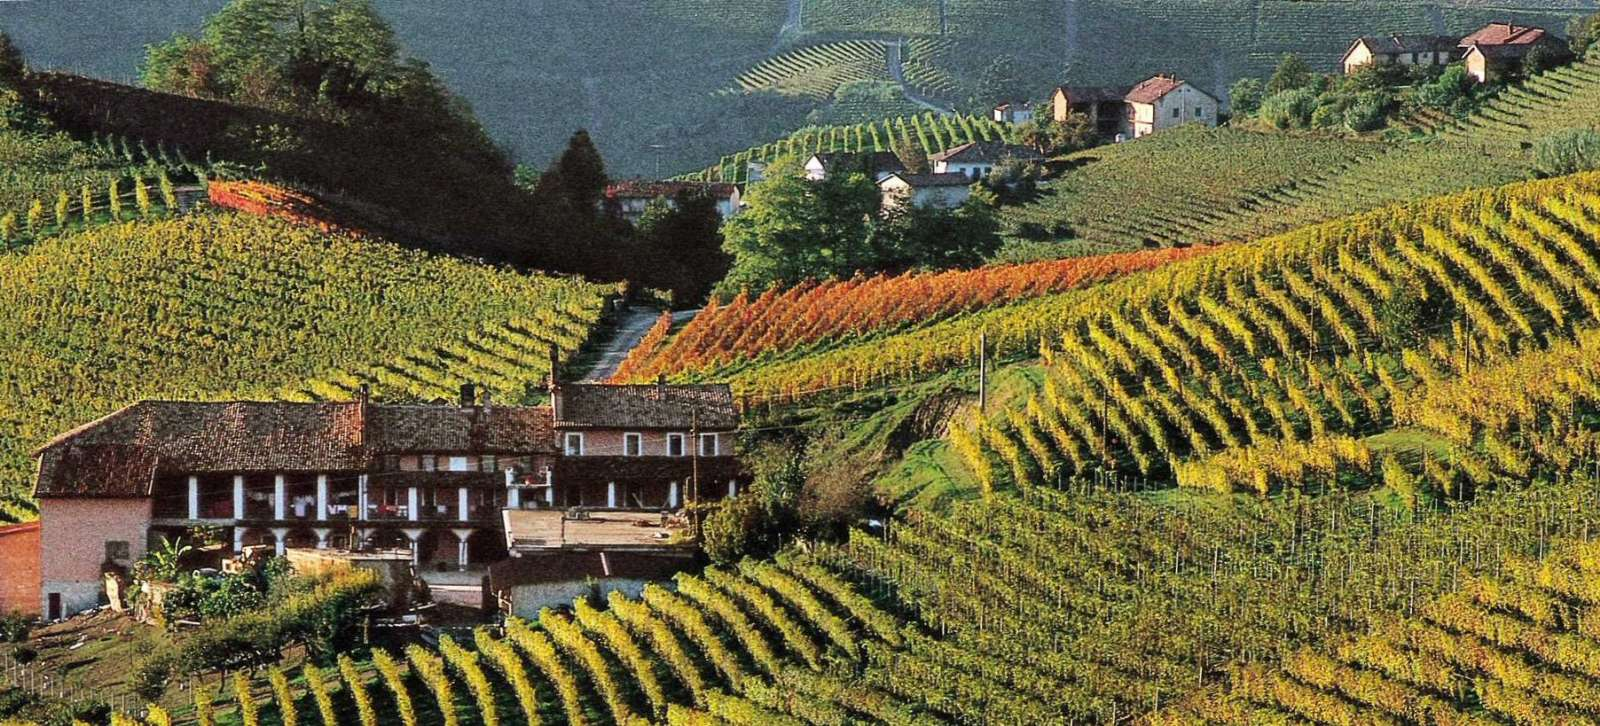 Piedmont's rolling vineyards